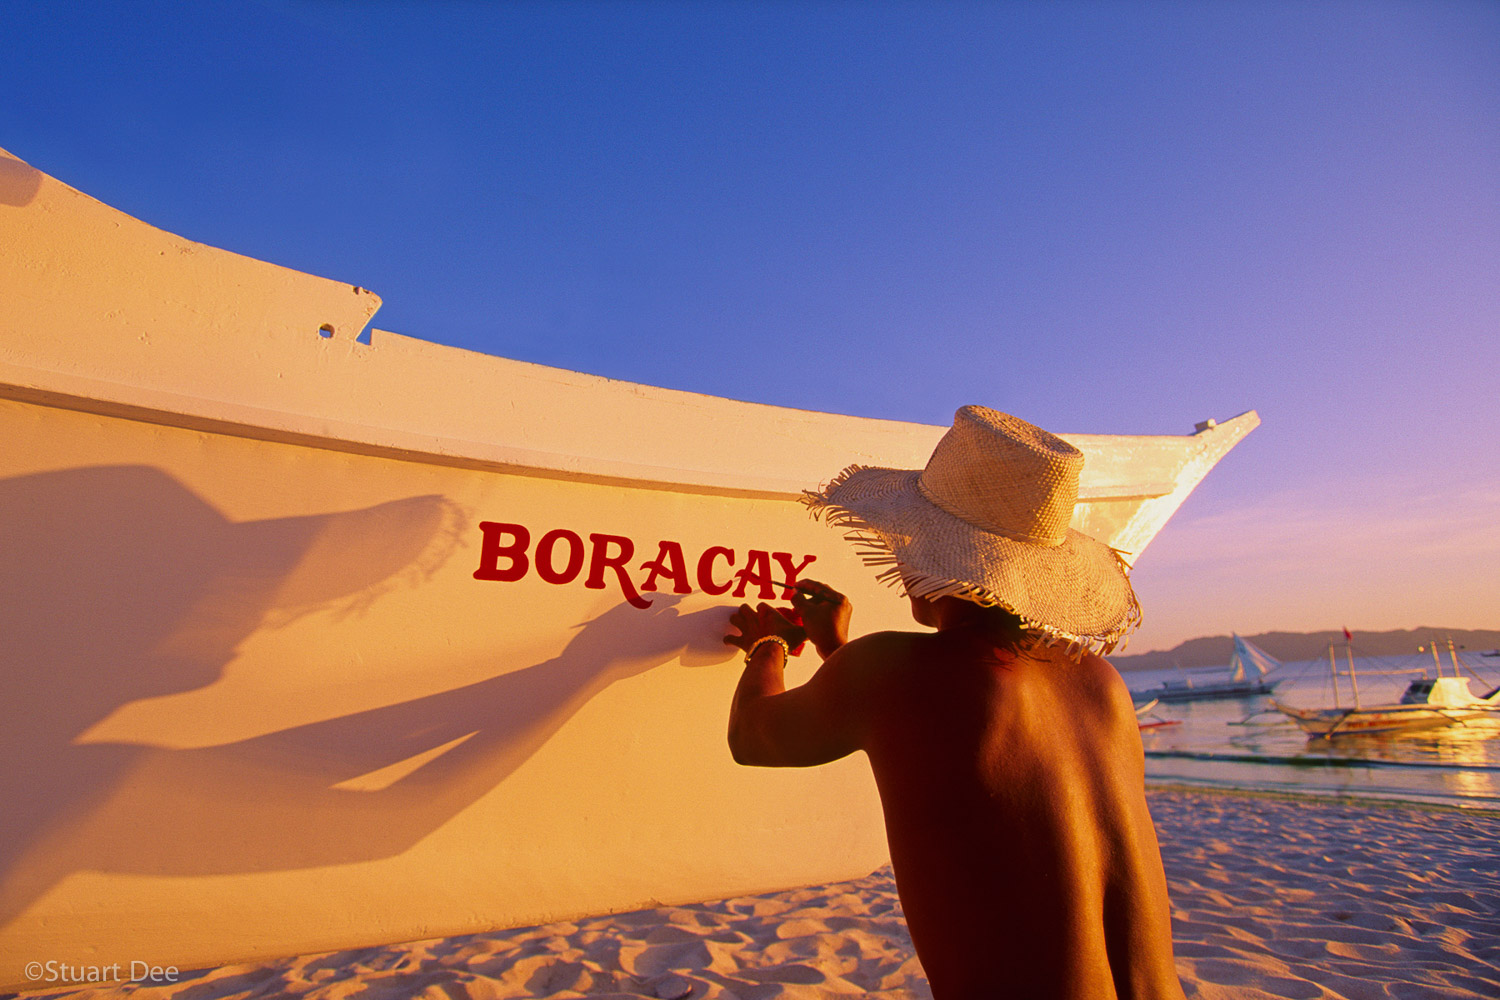 Man painting name on boat at beach, with tranlucent shadow, Boracay, Panay, Philippines